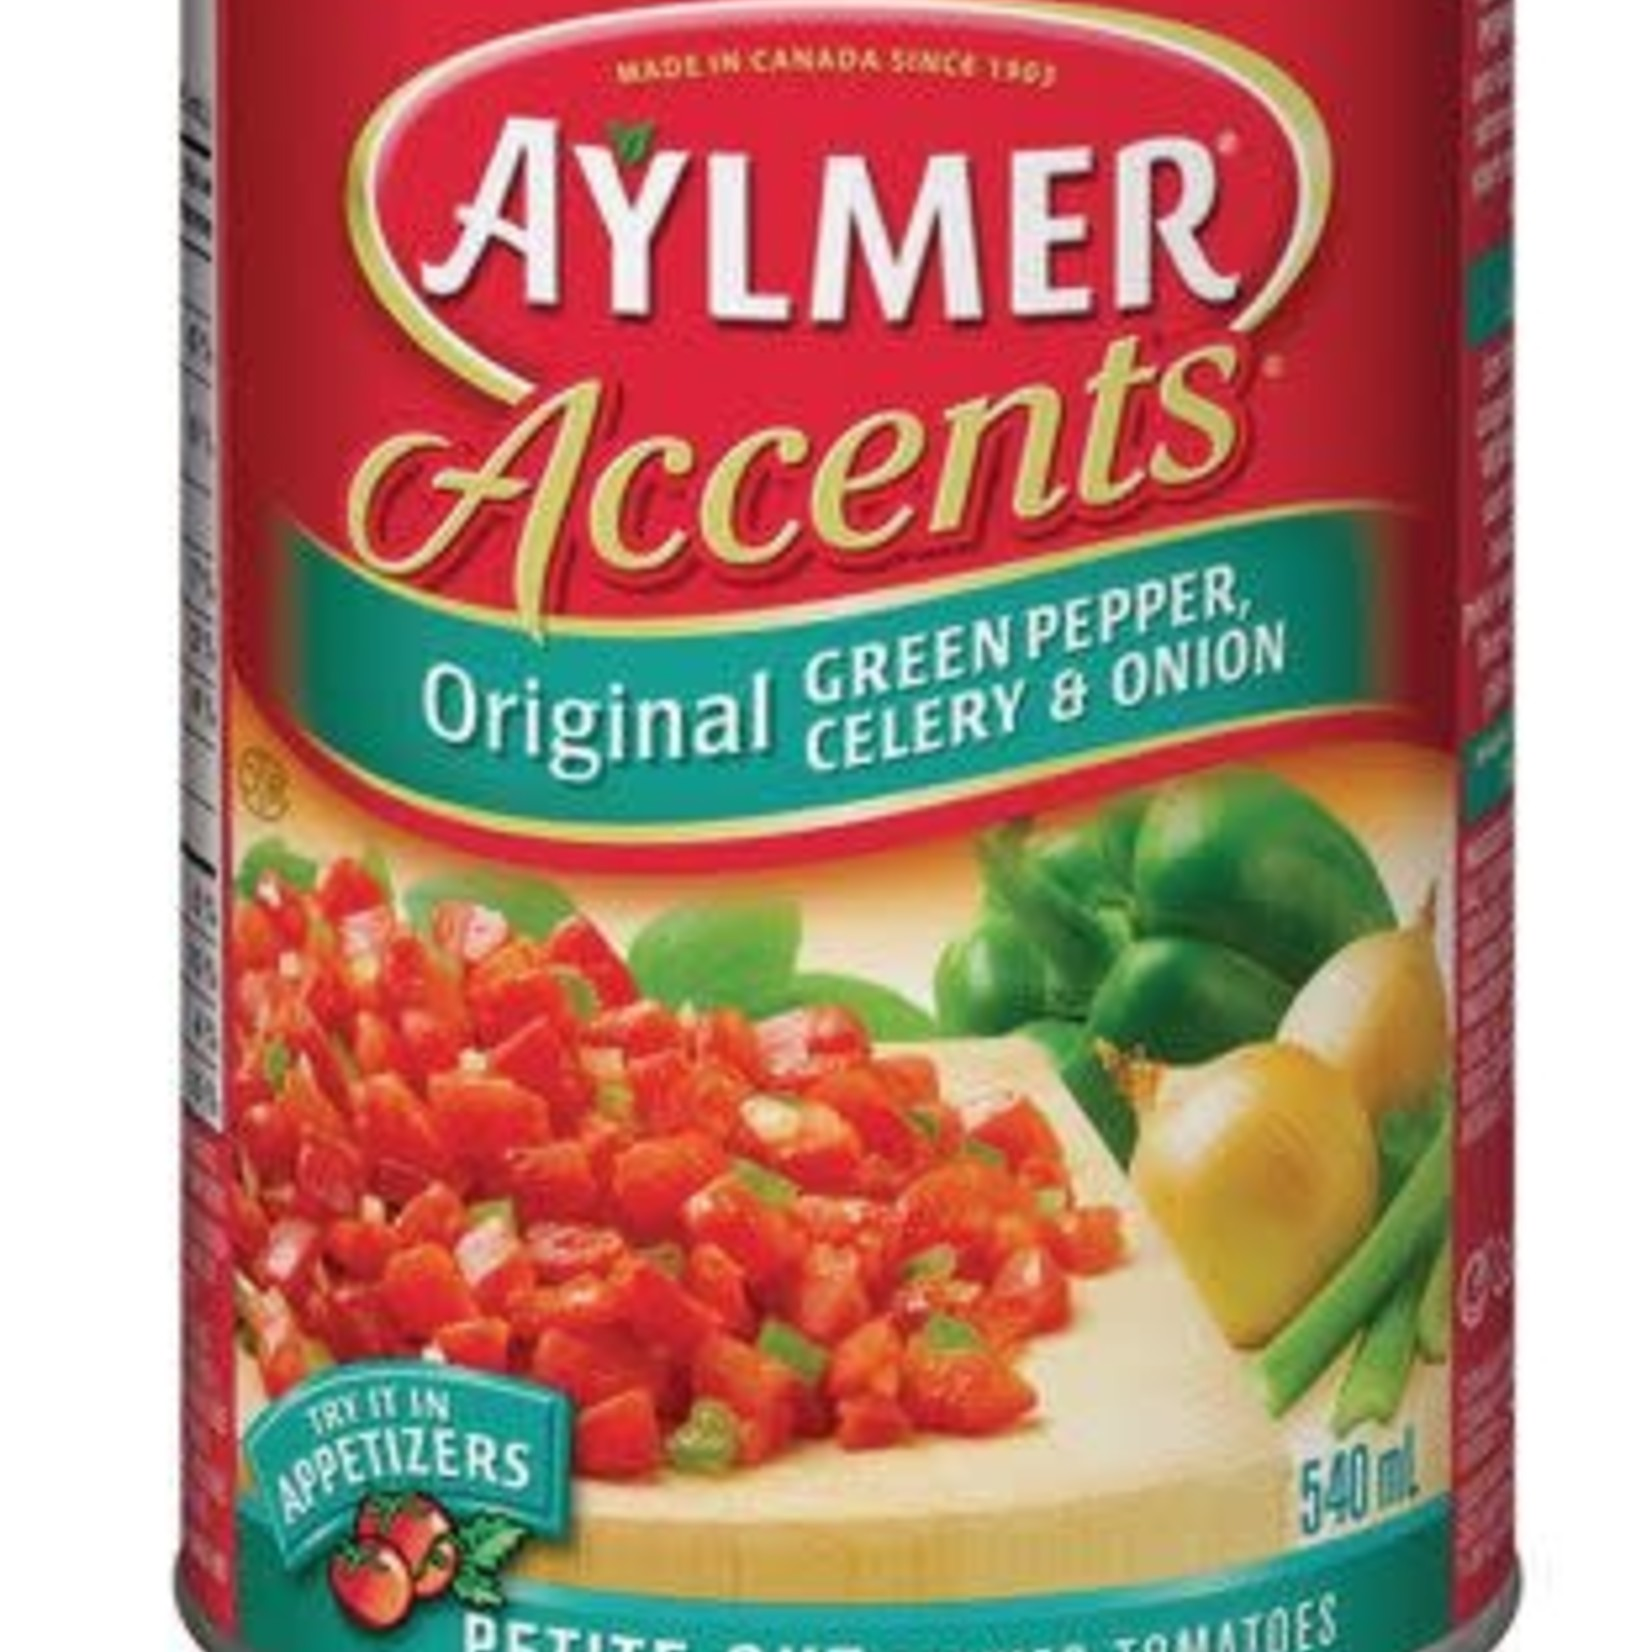 Aylmer Accents Tomatoes - Original Green Pepper, Celery & Onion 540ml